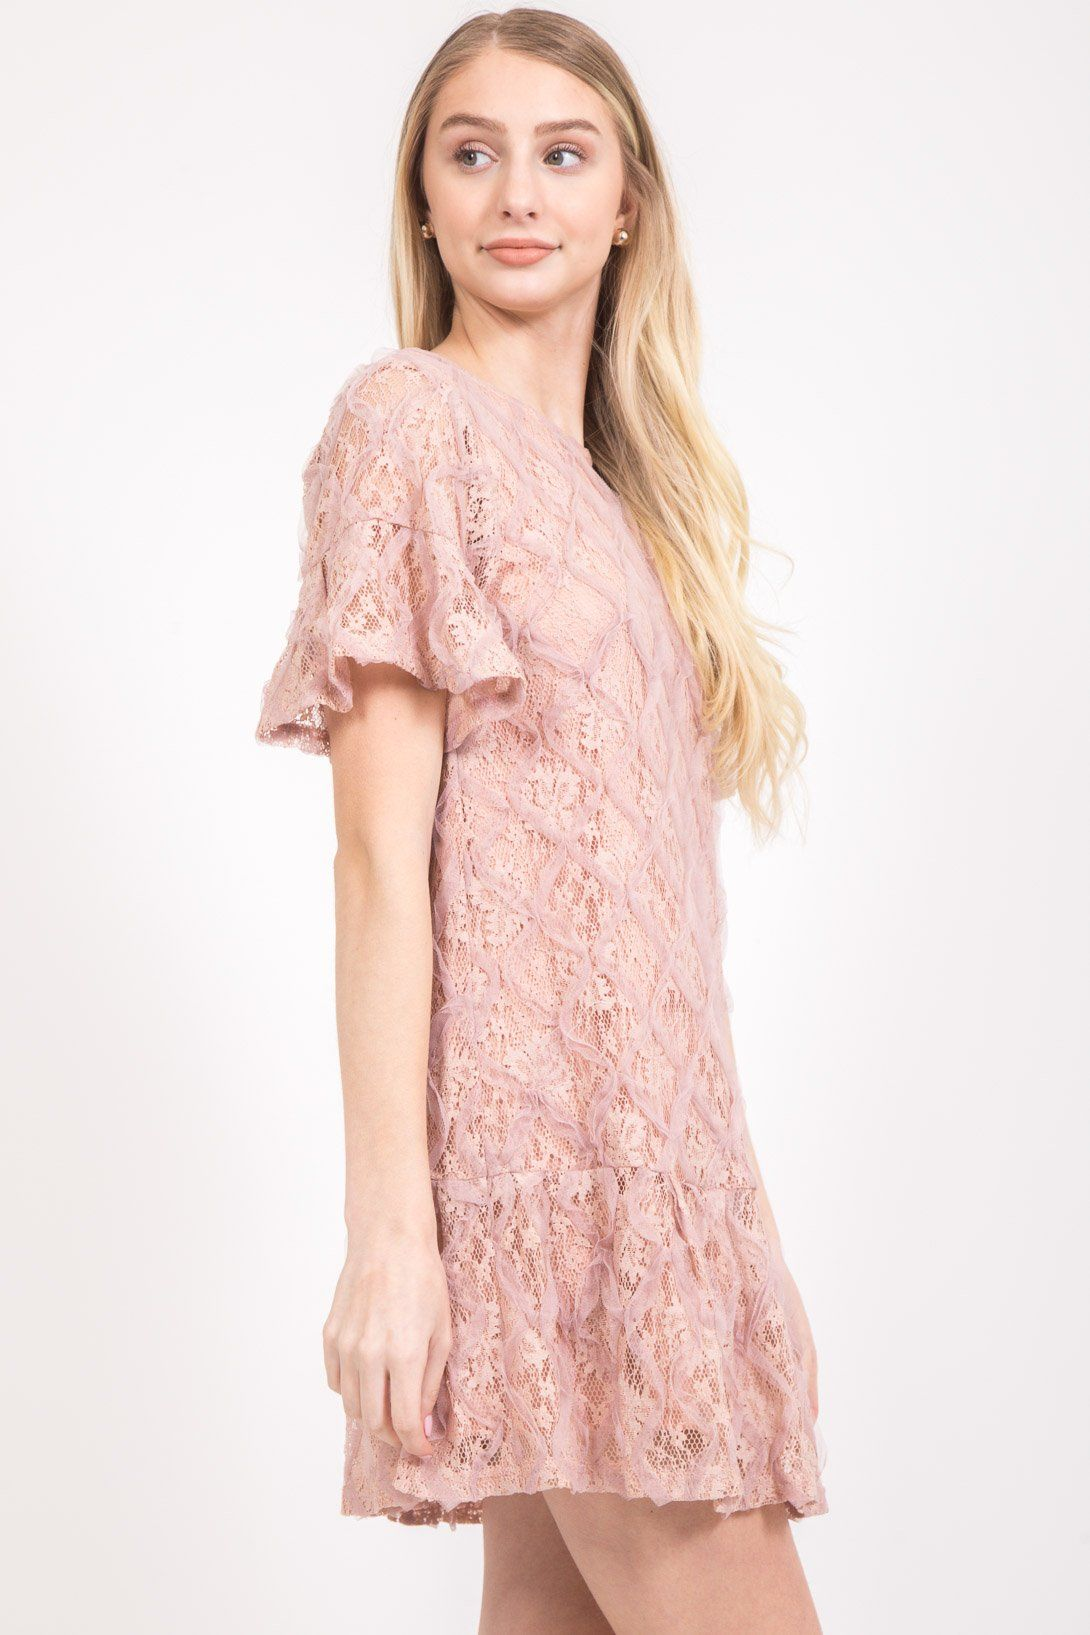 Flirty Blush Lace Dress